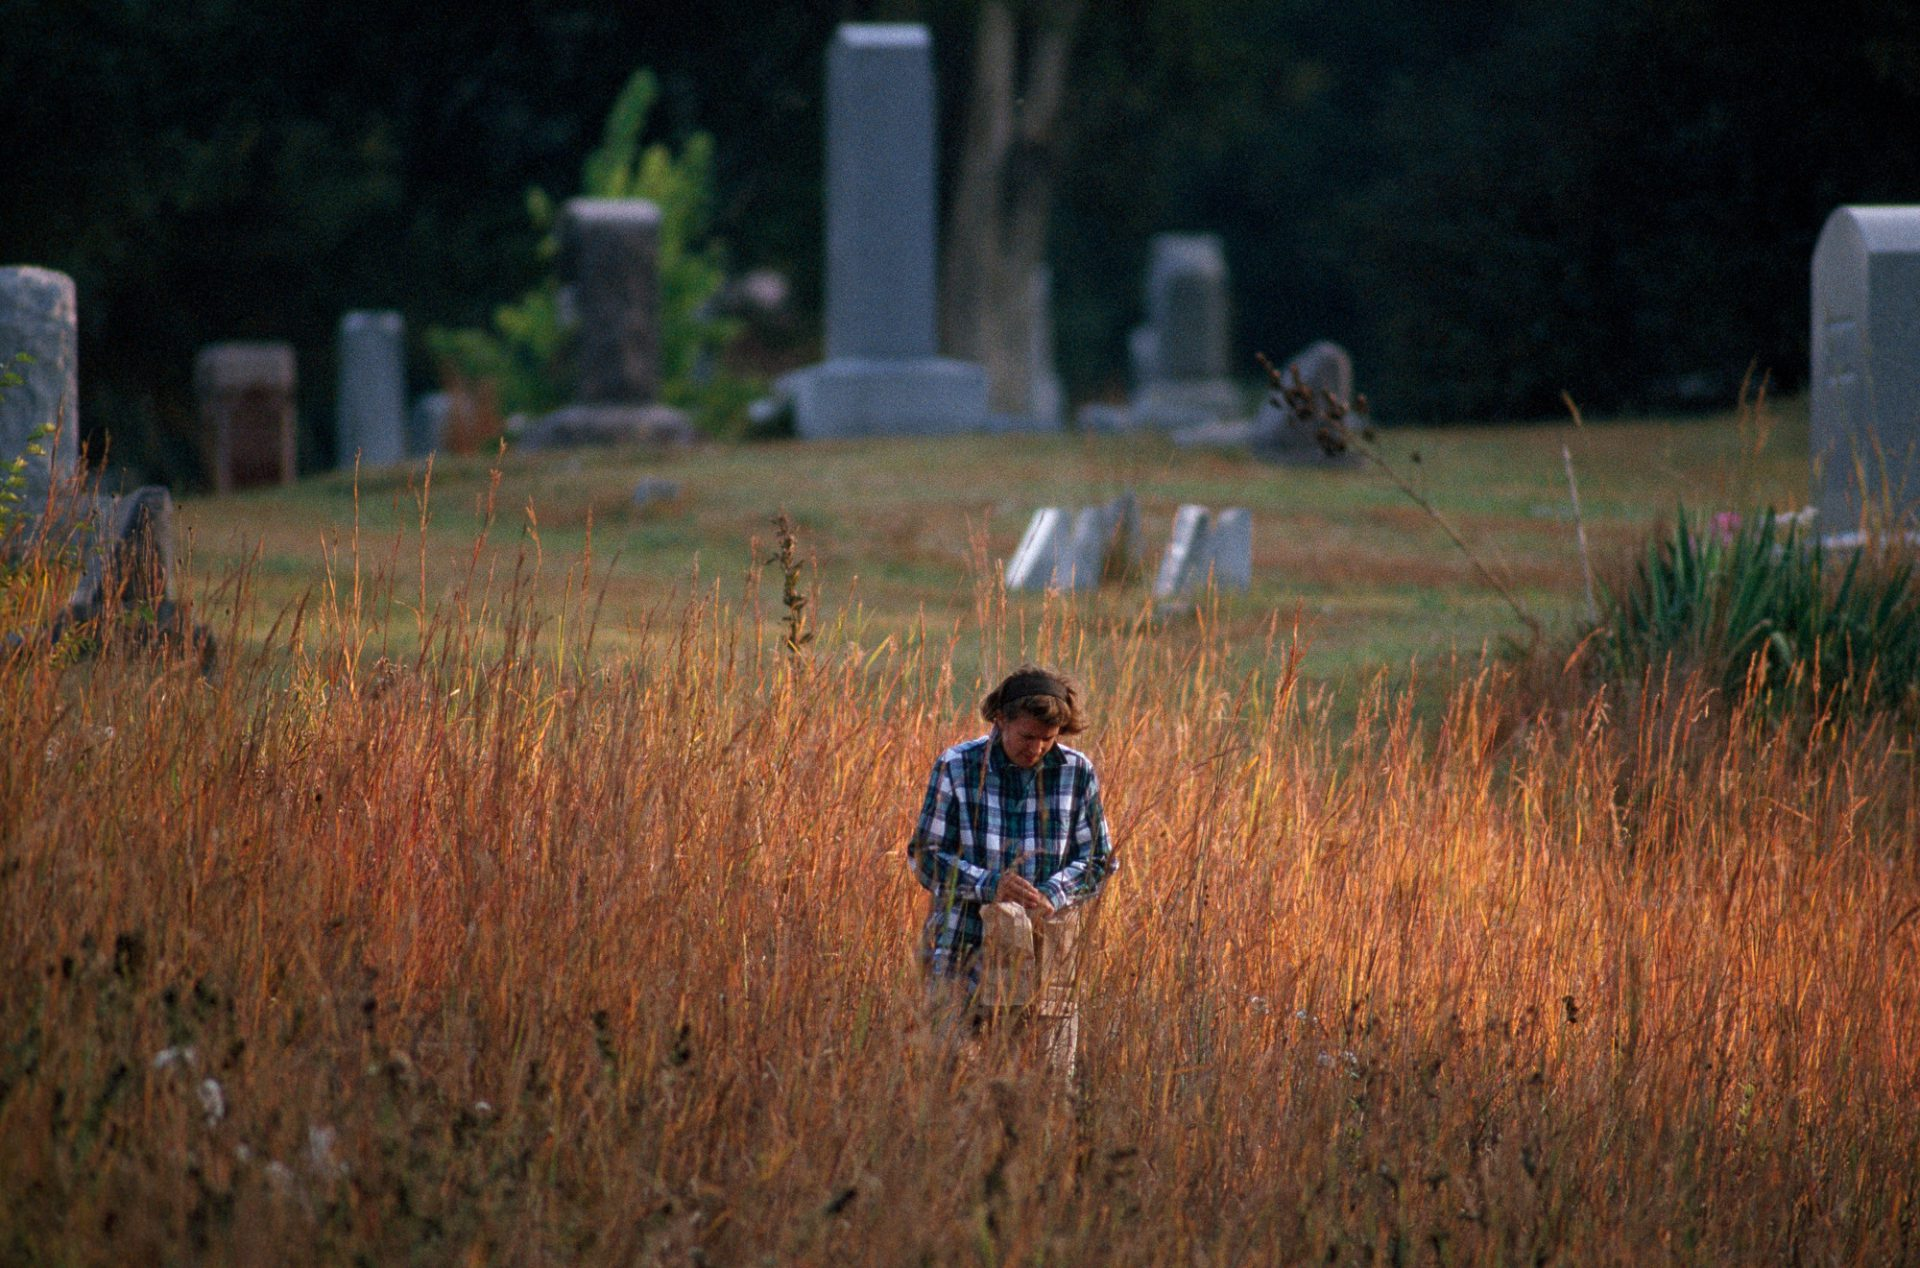 Photo: A volunteer collects seeds from wildflowers and native grasses to plant.